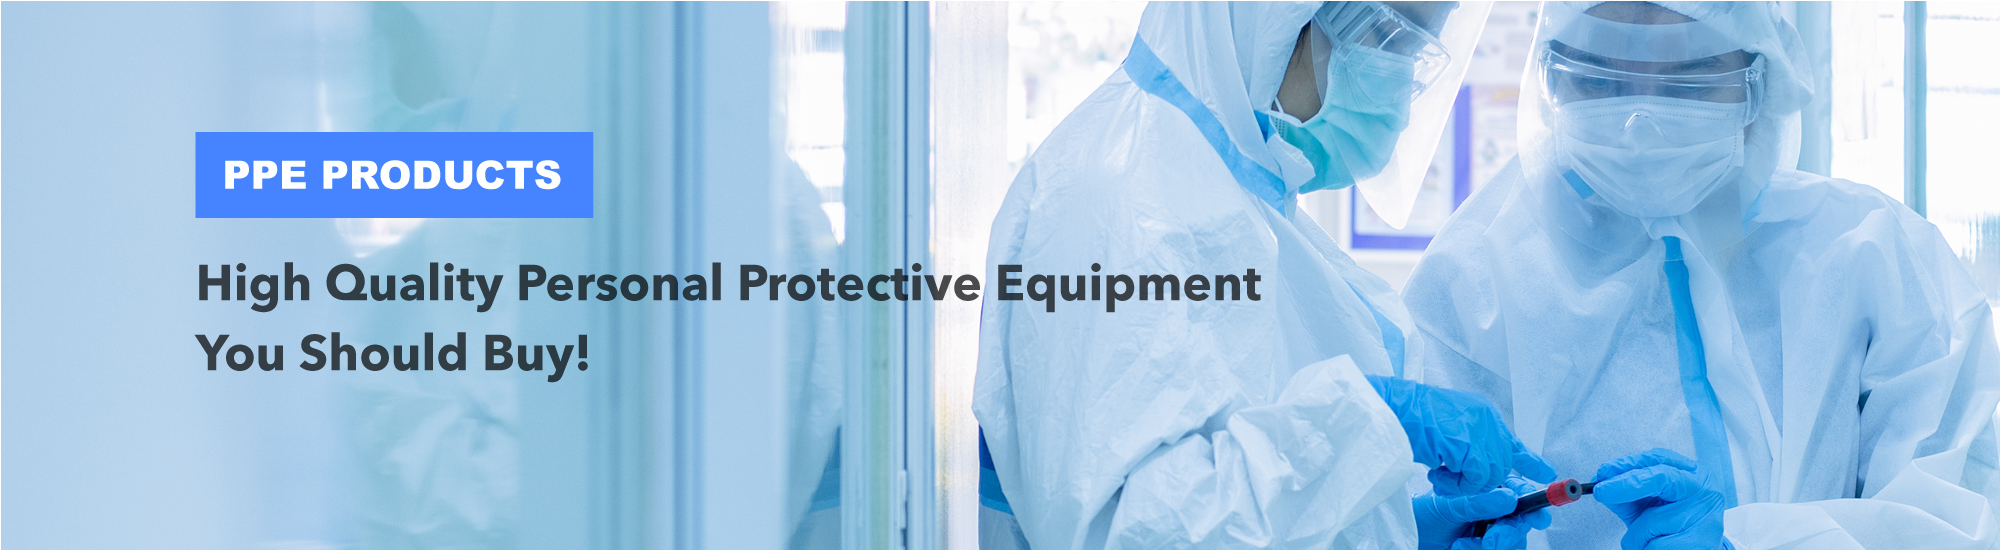 https://mycare.com.my/estore/professional-products/surgical-equipment/surgical-protective-wear/